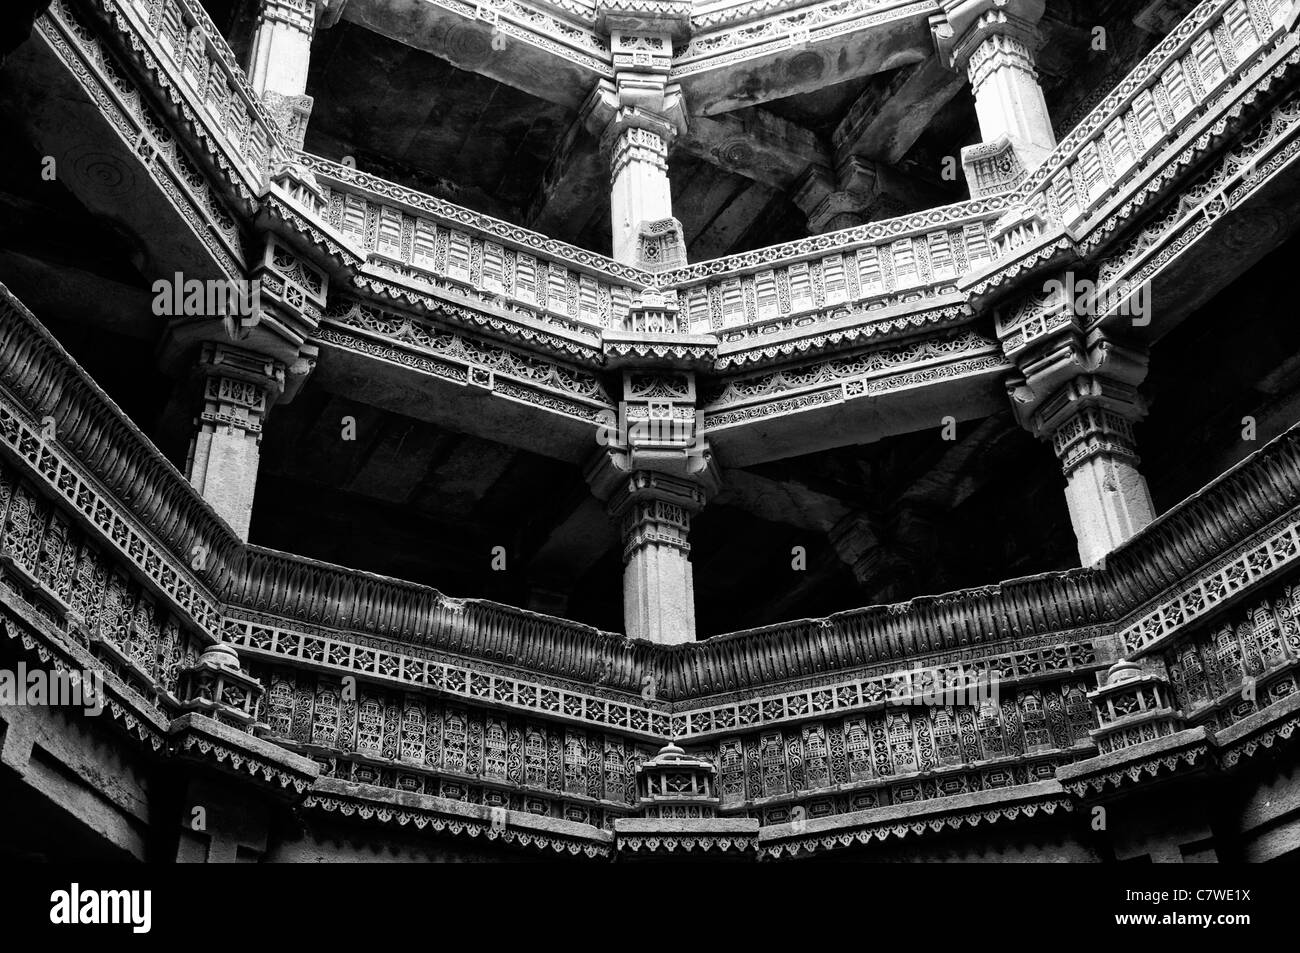 architectural detail exquisite exquisitely intricate intricately carved historic stone Adalaj Stepwell Ahmedabad - Stock Image